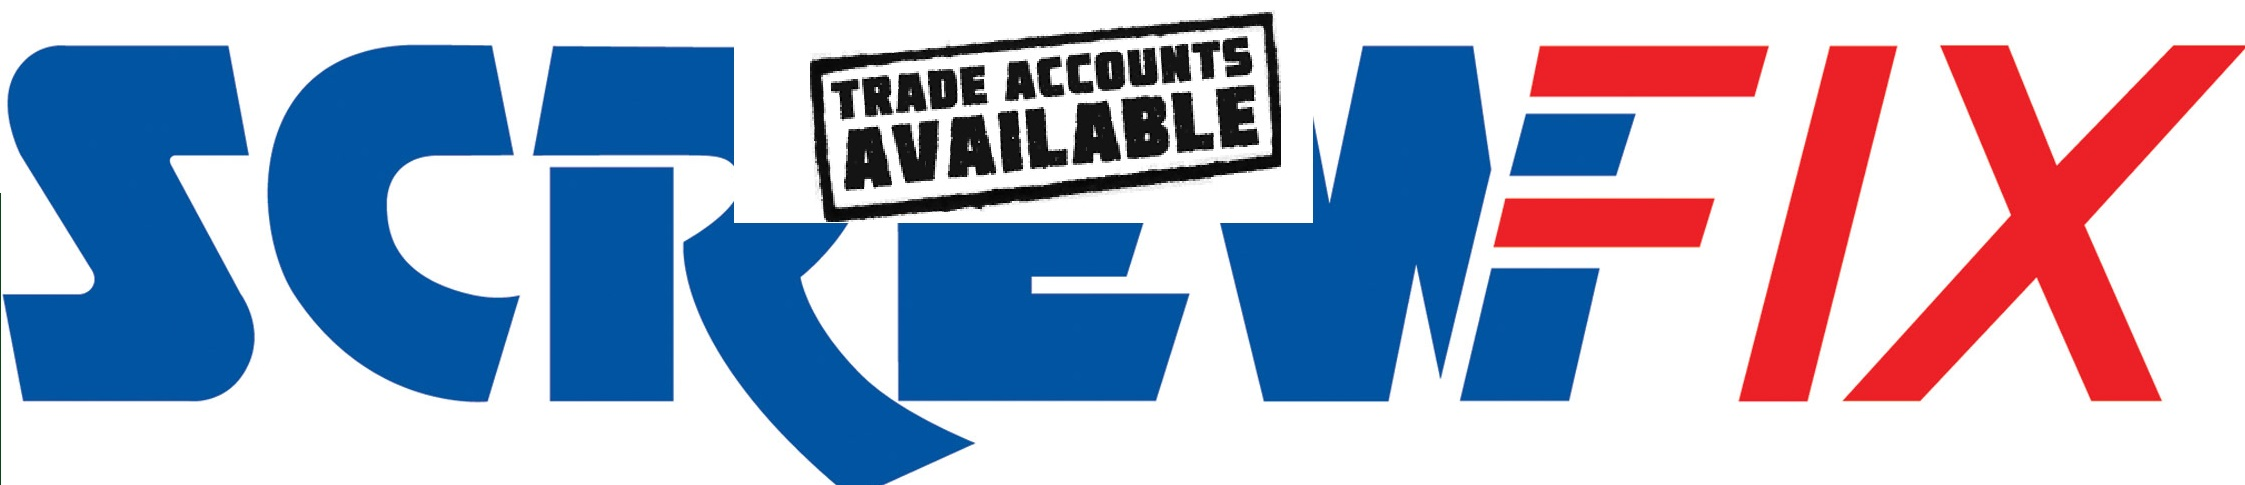 Screwfix discount codes